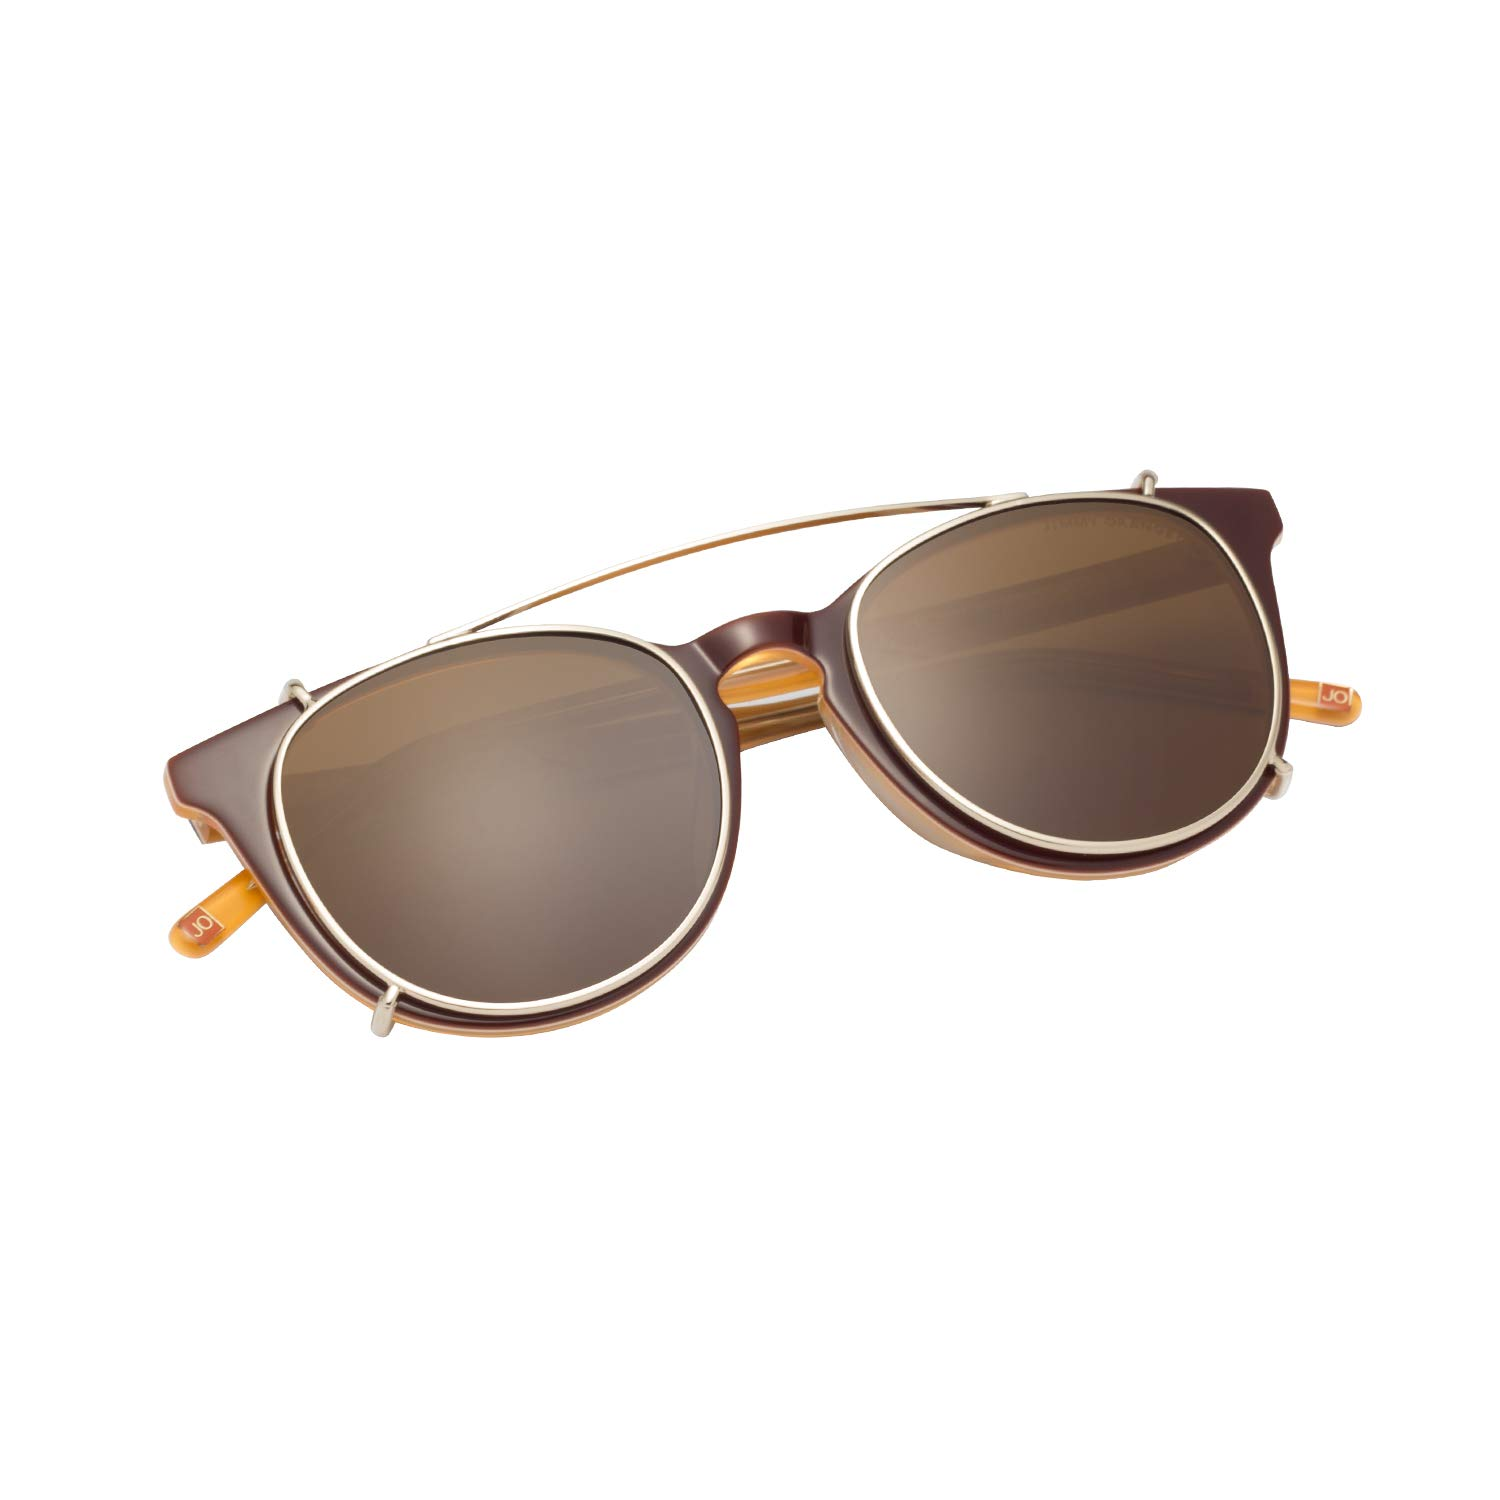 80ddf304f8 Amazon.com  JO Polarized Sunglasses Clip for Man Women with Optical Glasses  JO5115 Brown  Clothing